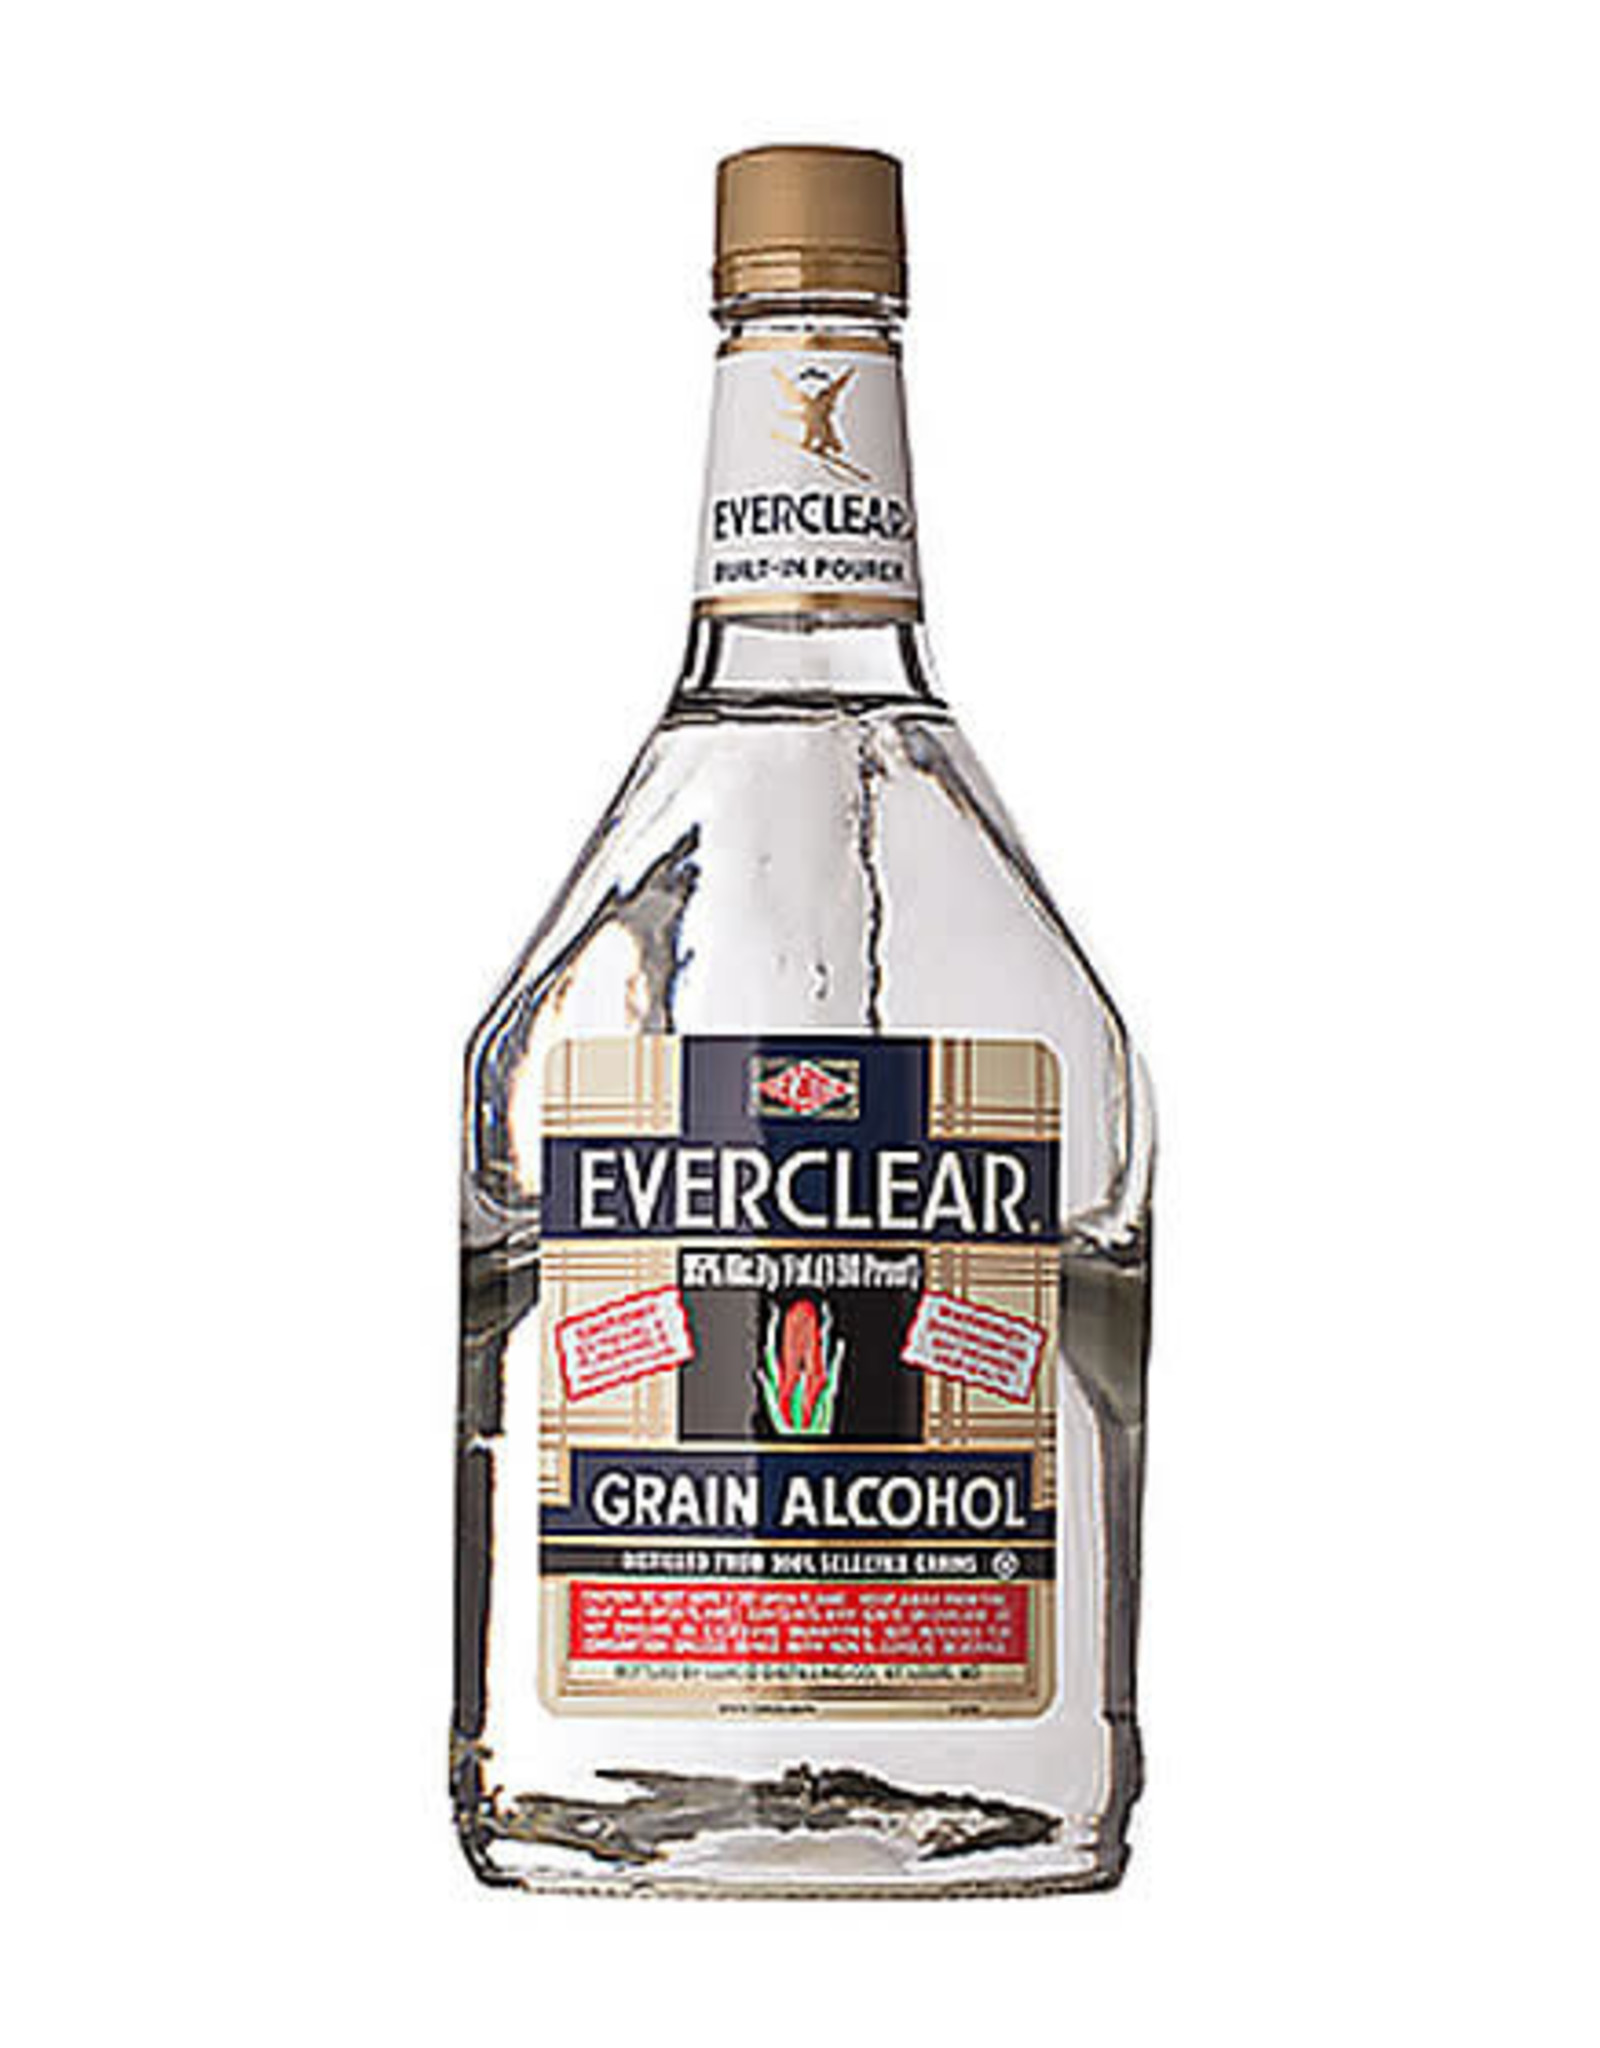 EVERCLEAR 1.75L